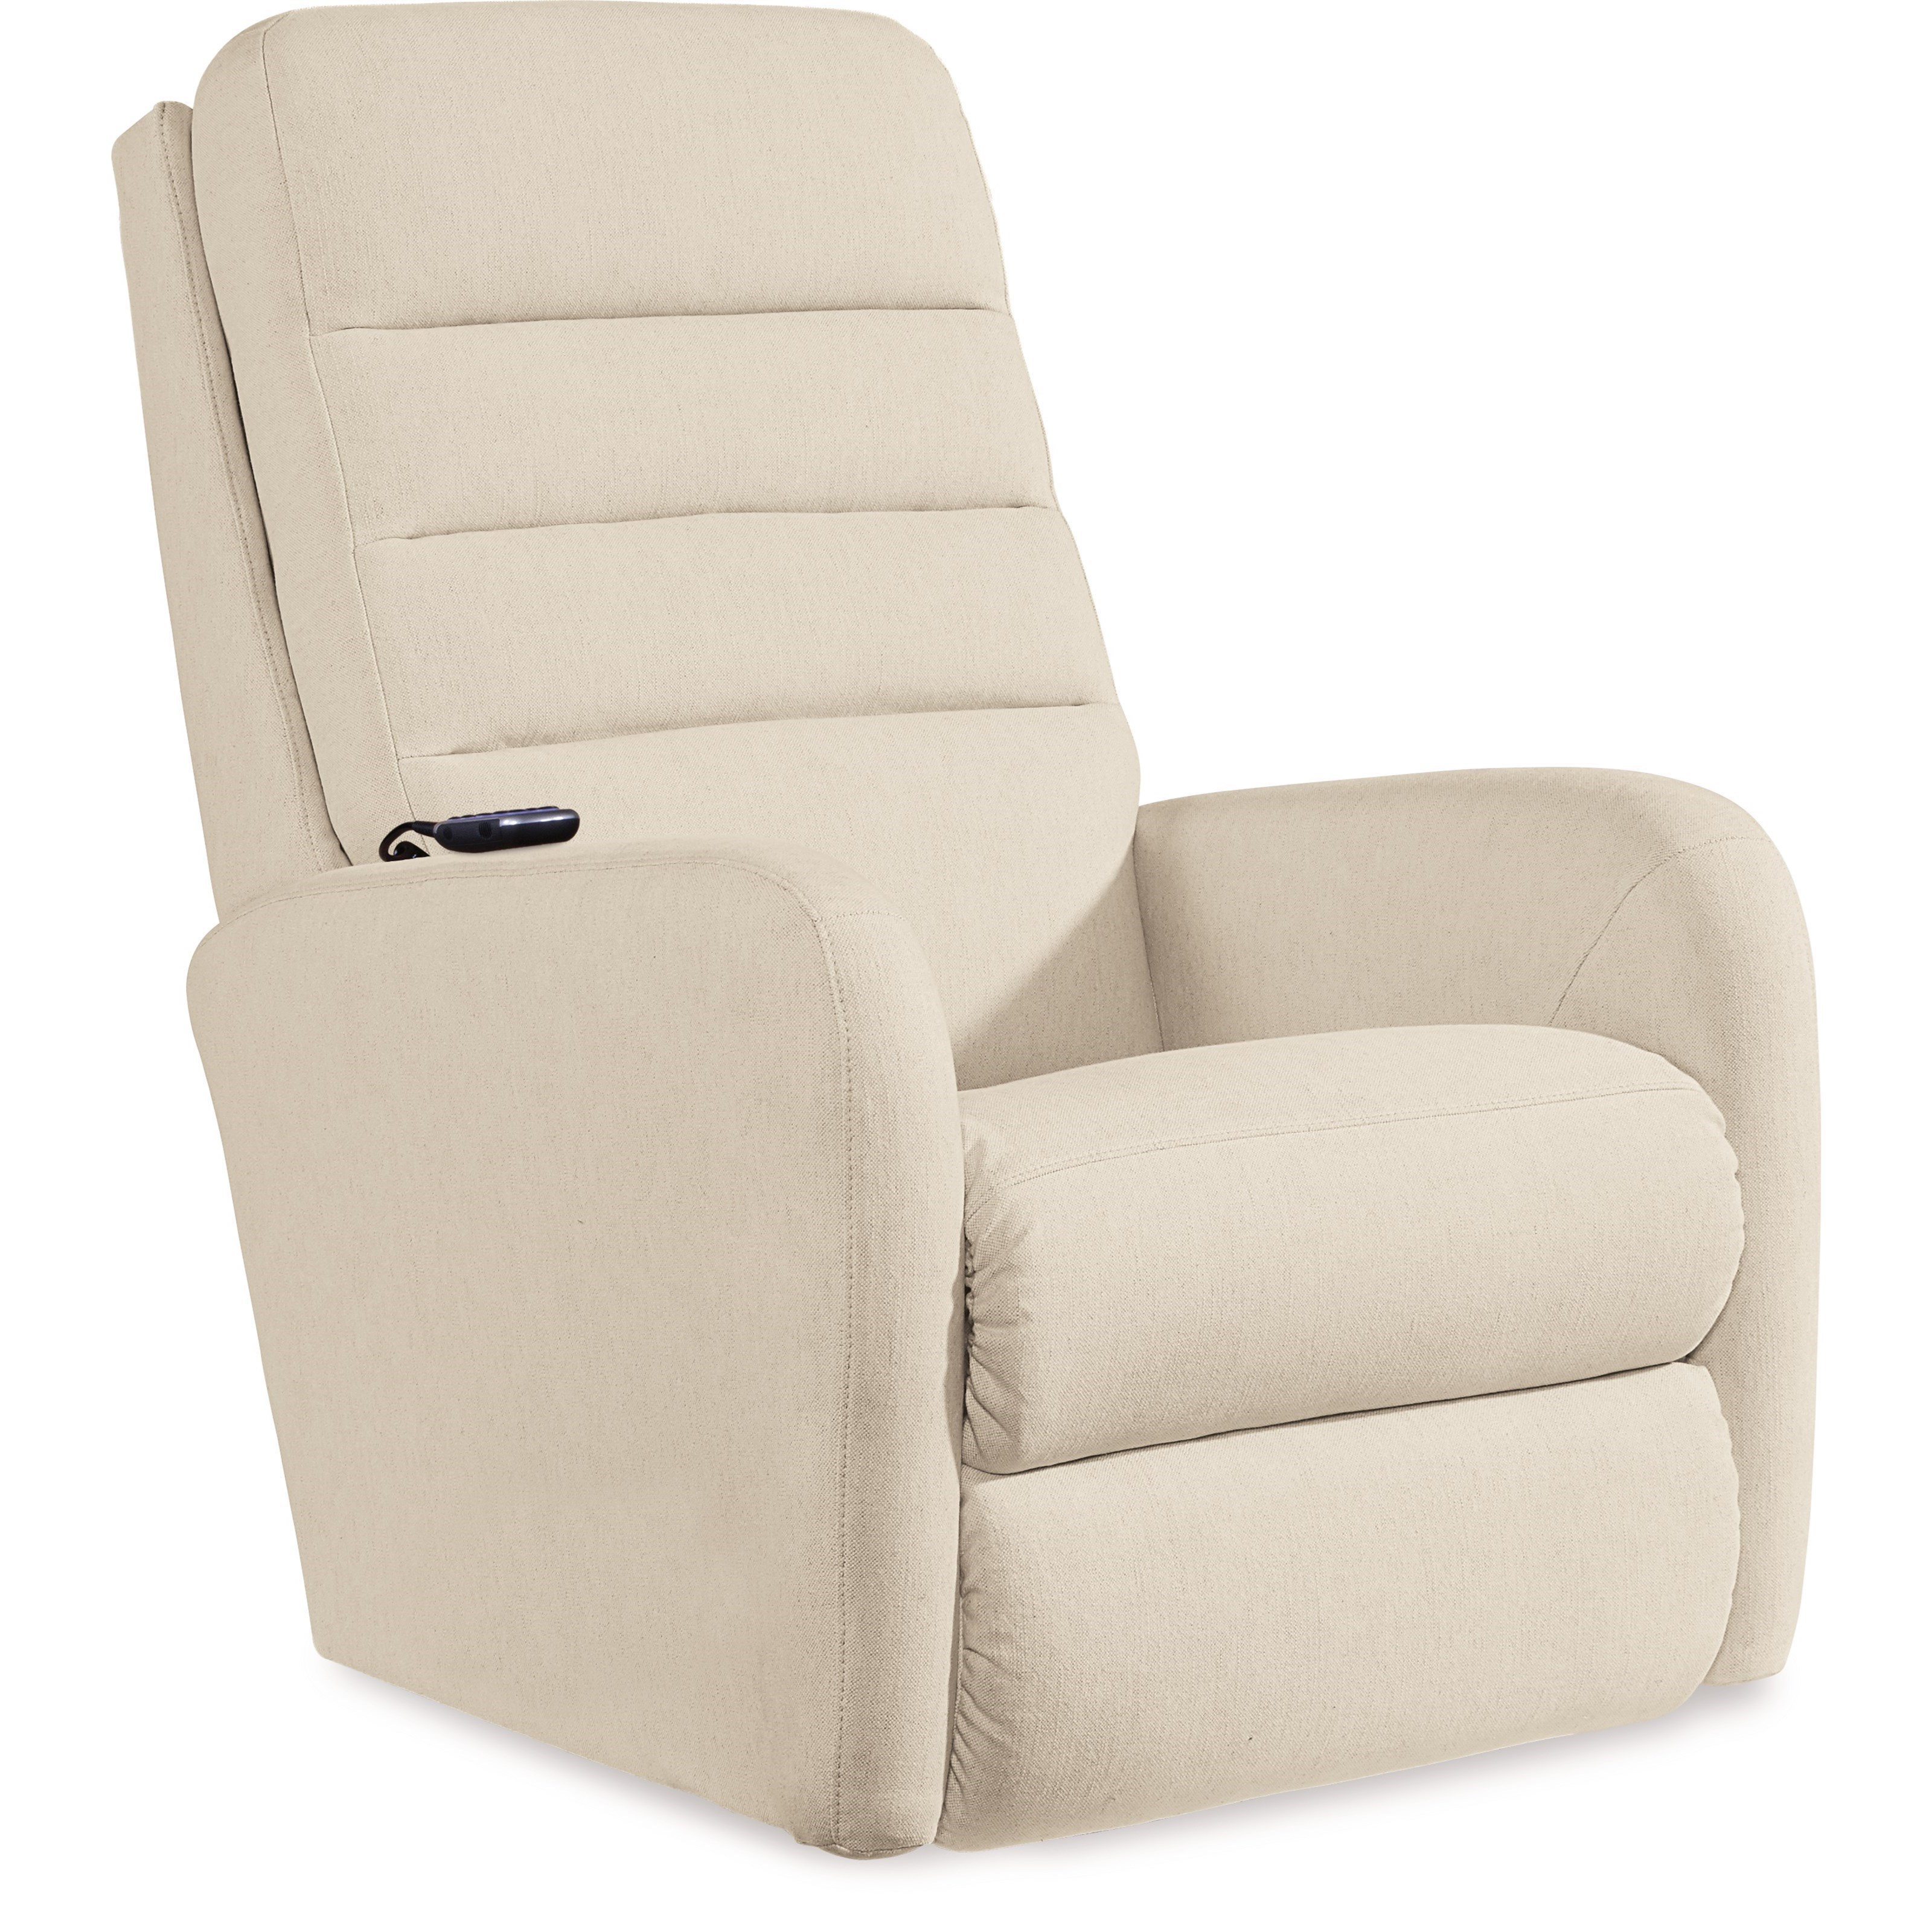 La Z Boy Forum Contemporary Power Recline Xr Rocking